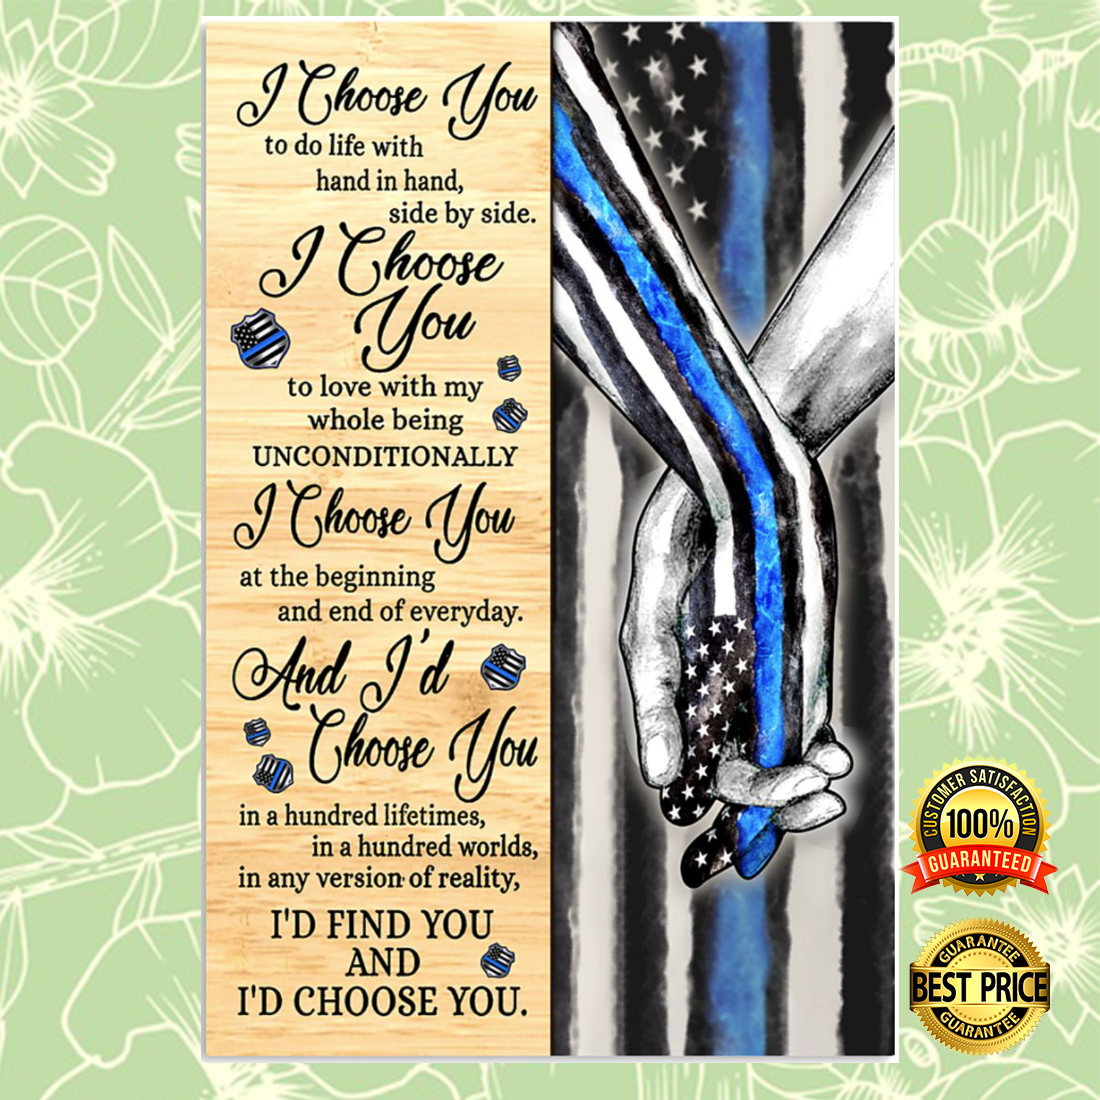 Police i choose you to do life with hand in hand side by side poster 4